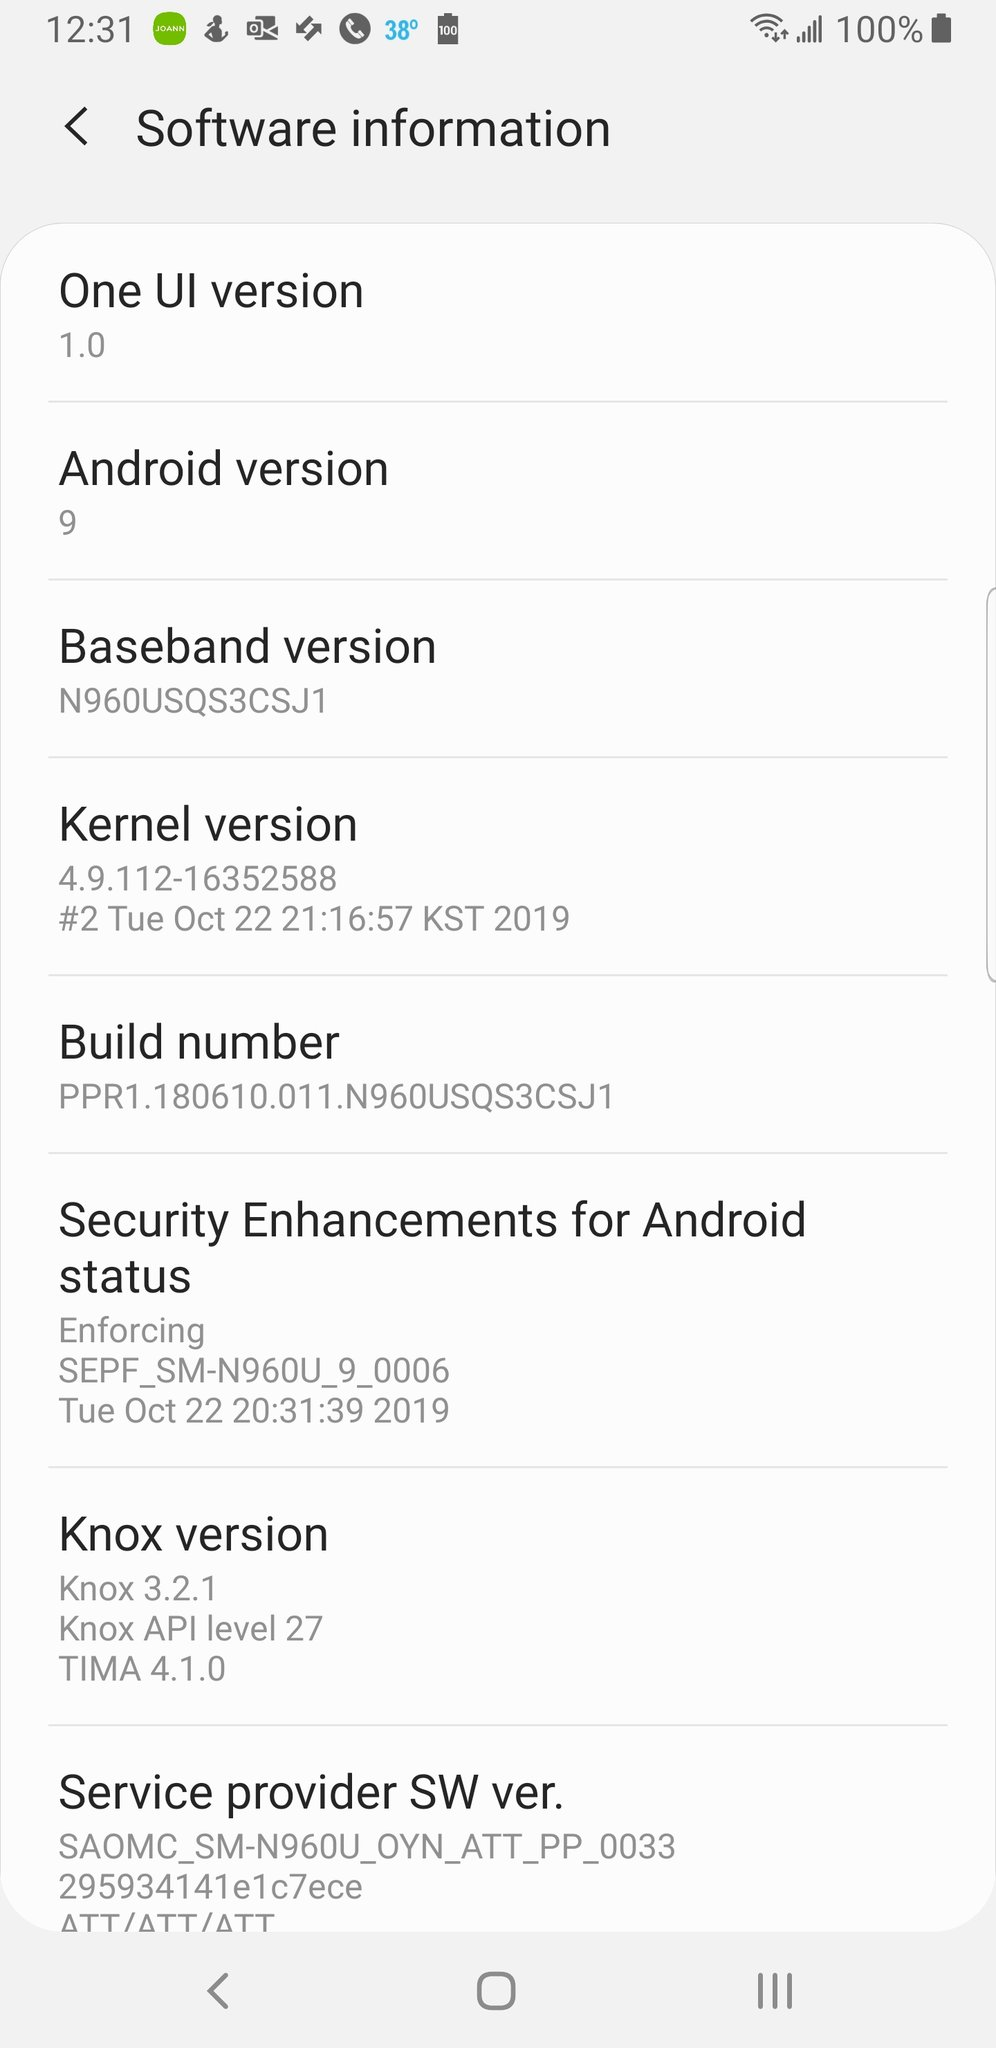 AT&T Galaxy Note 9 received Android 10 (One UI 2.0) update